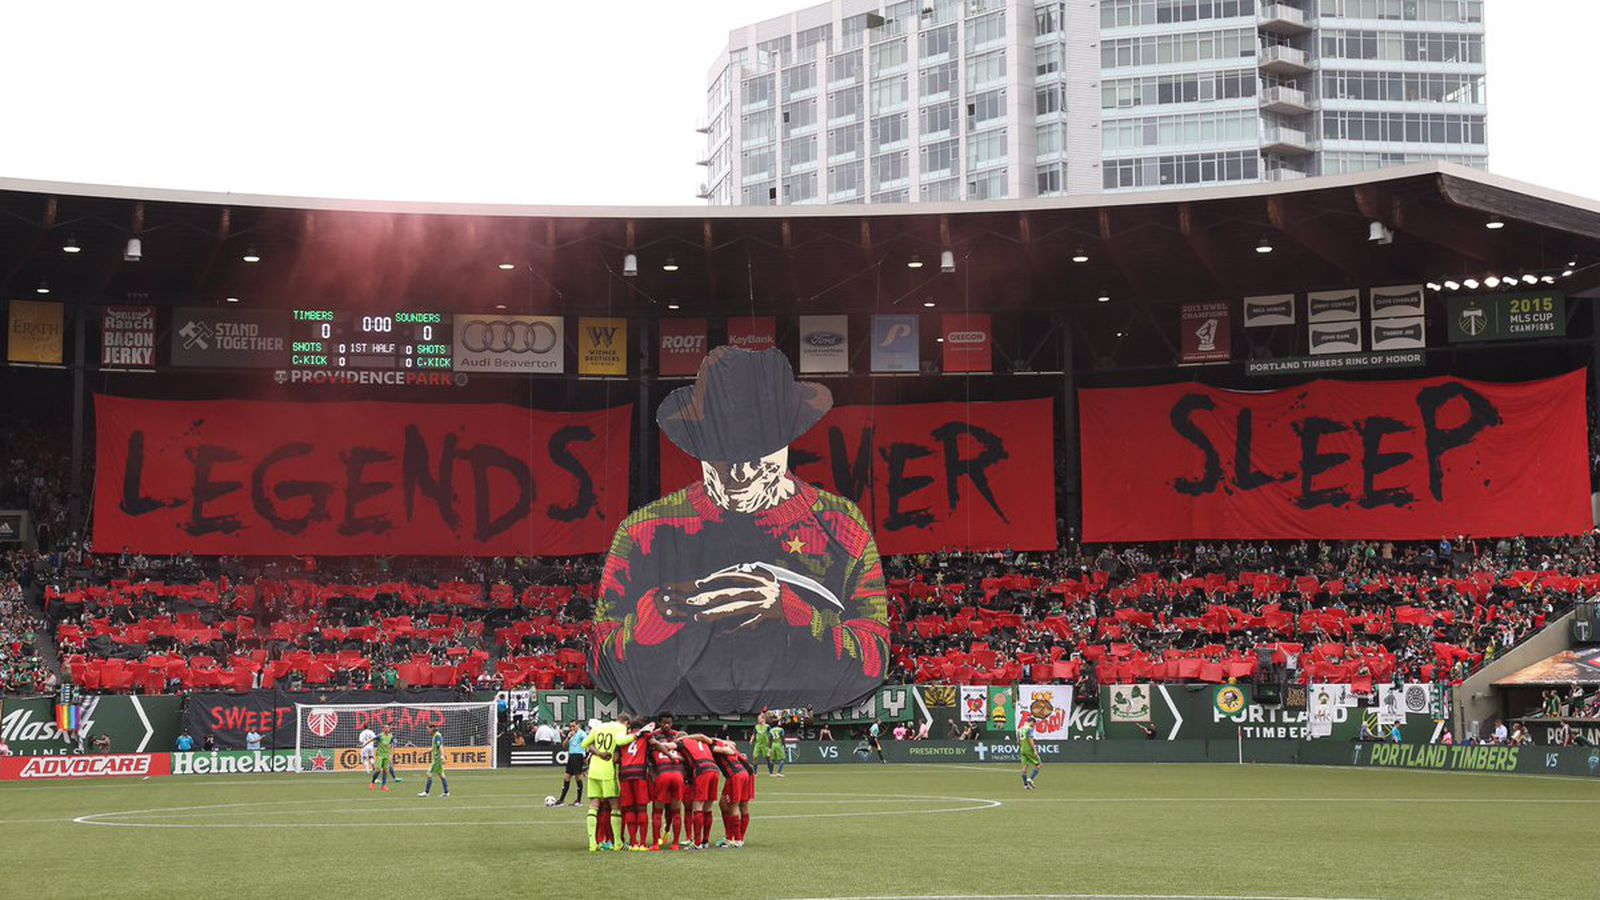 The Portland Timbers Freddy Krueger Tifo Will Haunt Your